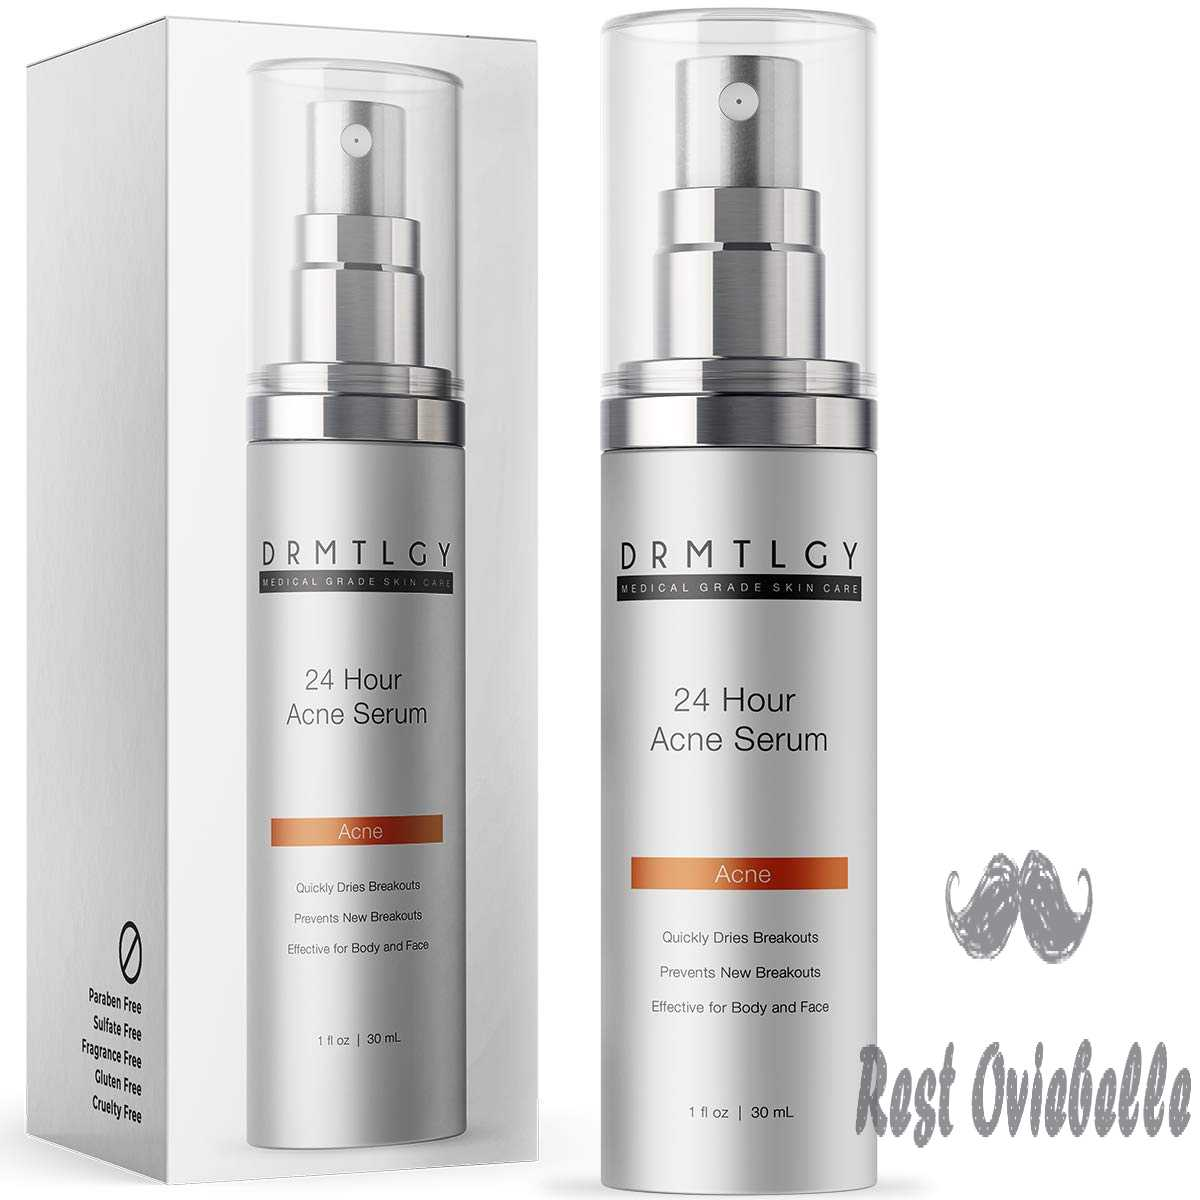 Drmtlgy Acne Spot Treatment And Cystic Acne Treatment